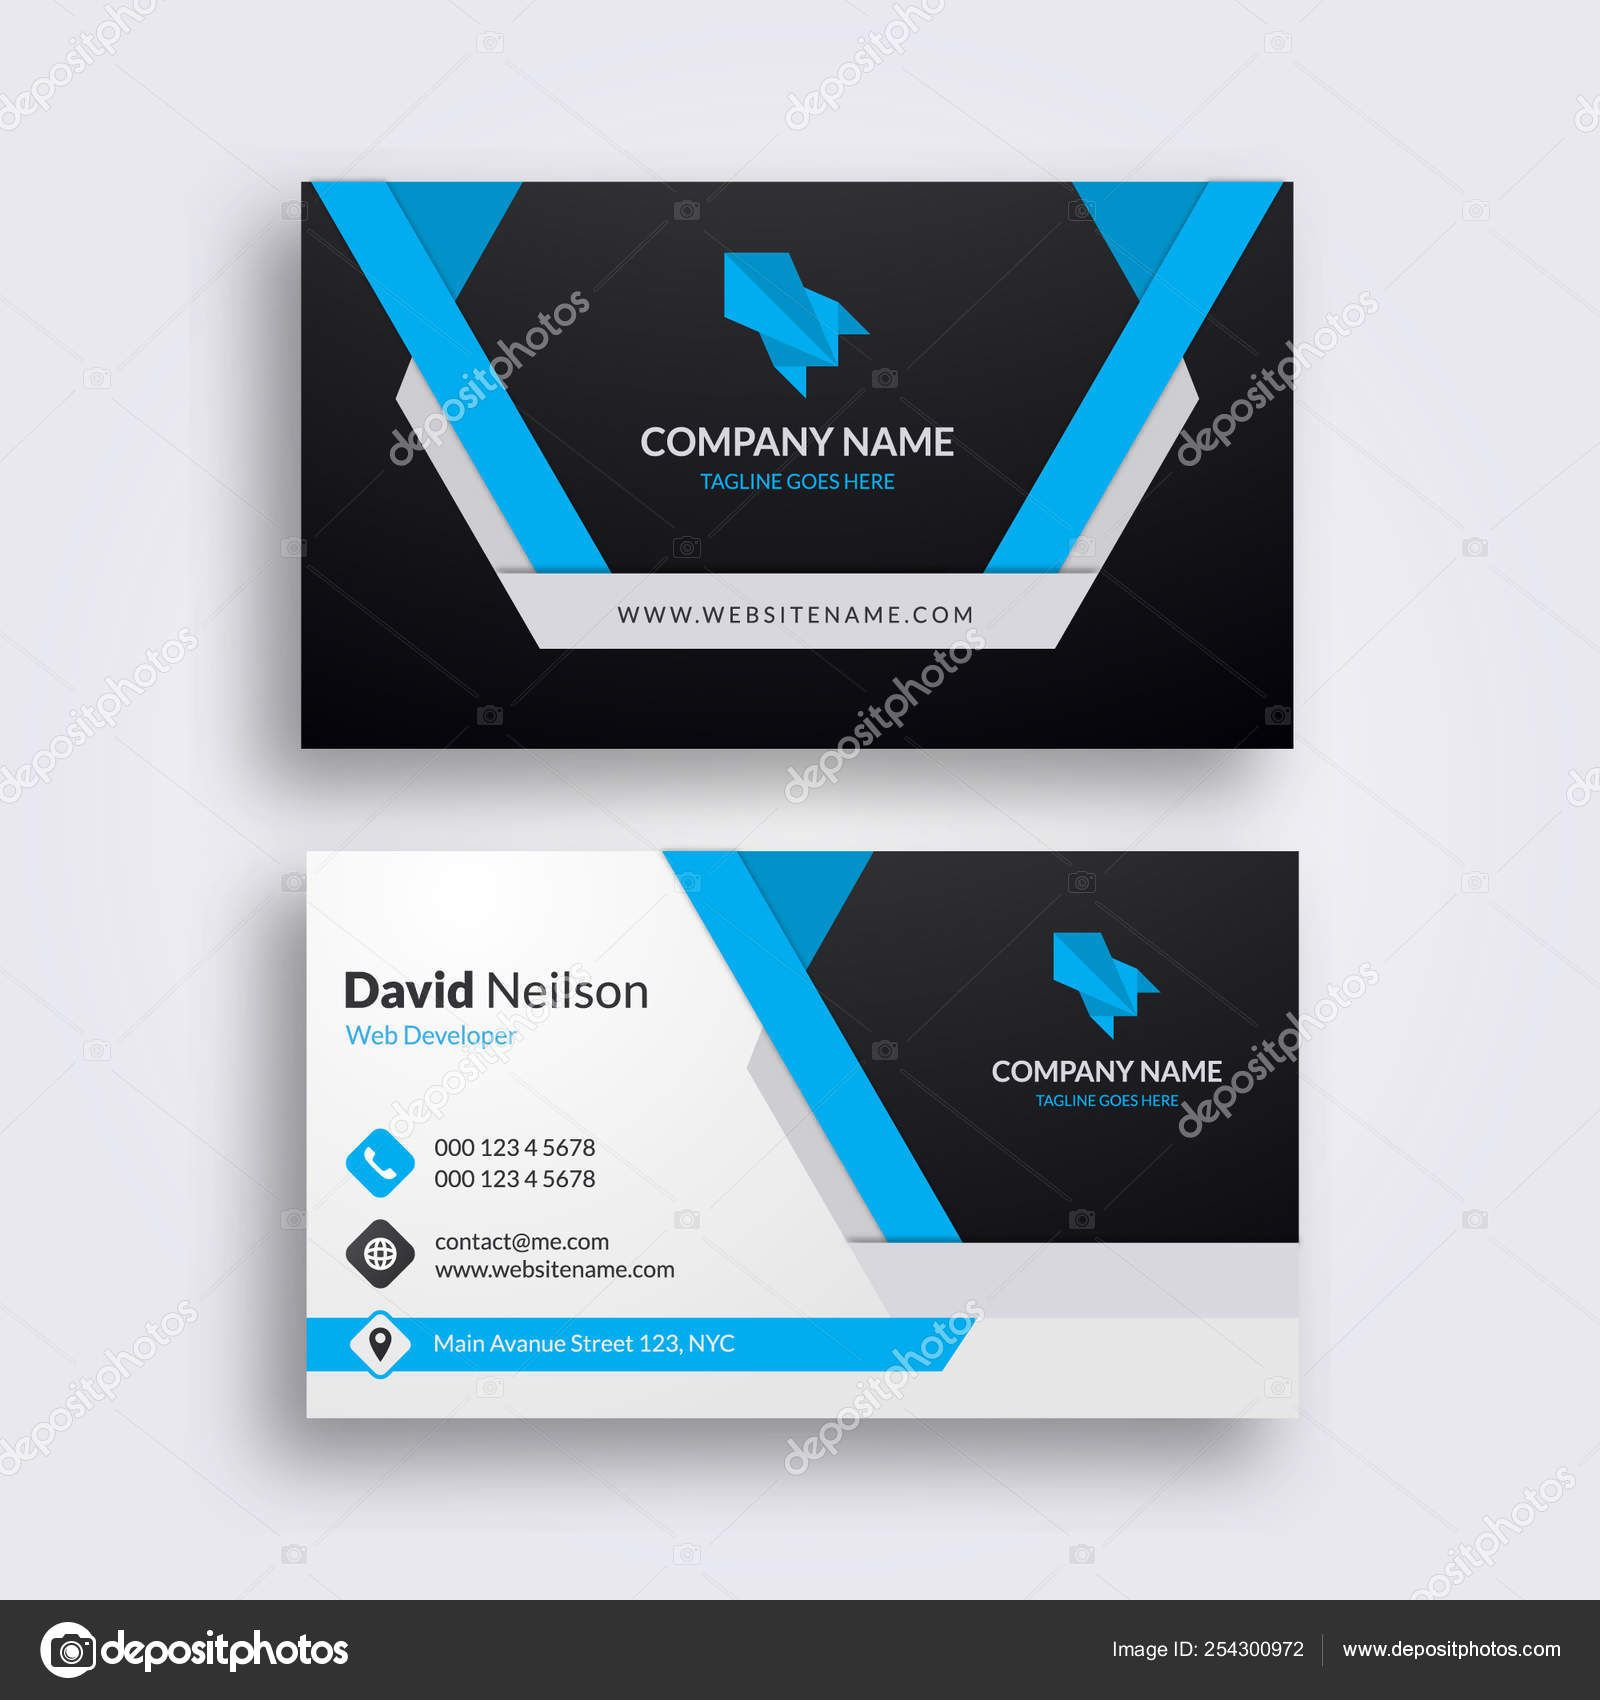 Professional Abstract Business Card Clean Fresh Design Regarding Visiting Card Illustrator Cleaning Business Cards Free Business Card Templates Visiting Cards